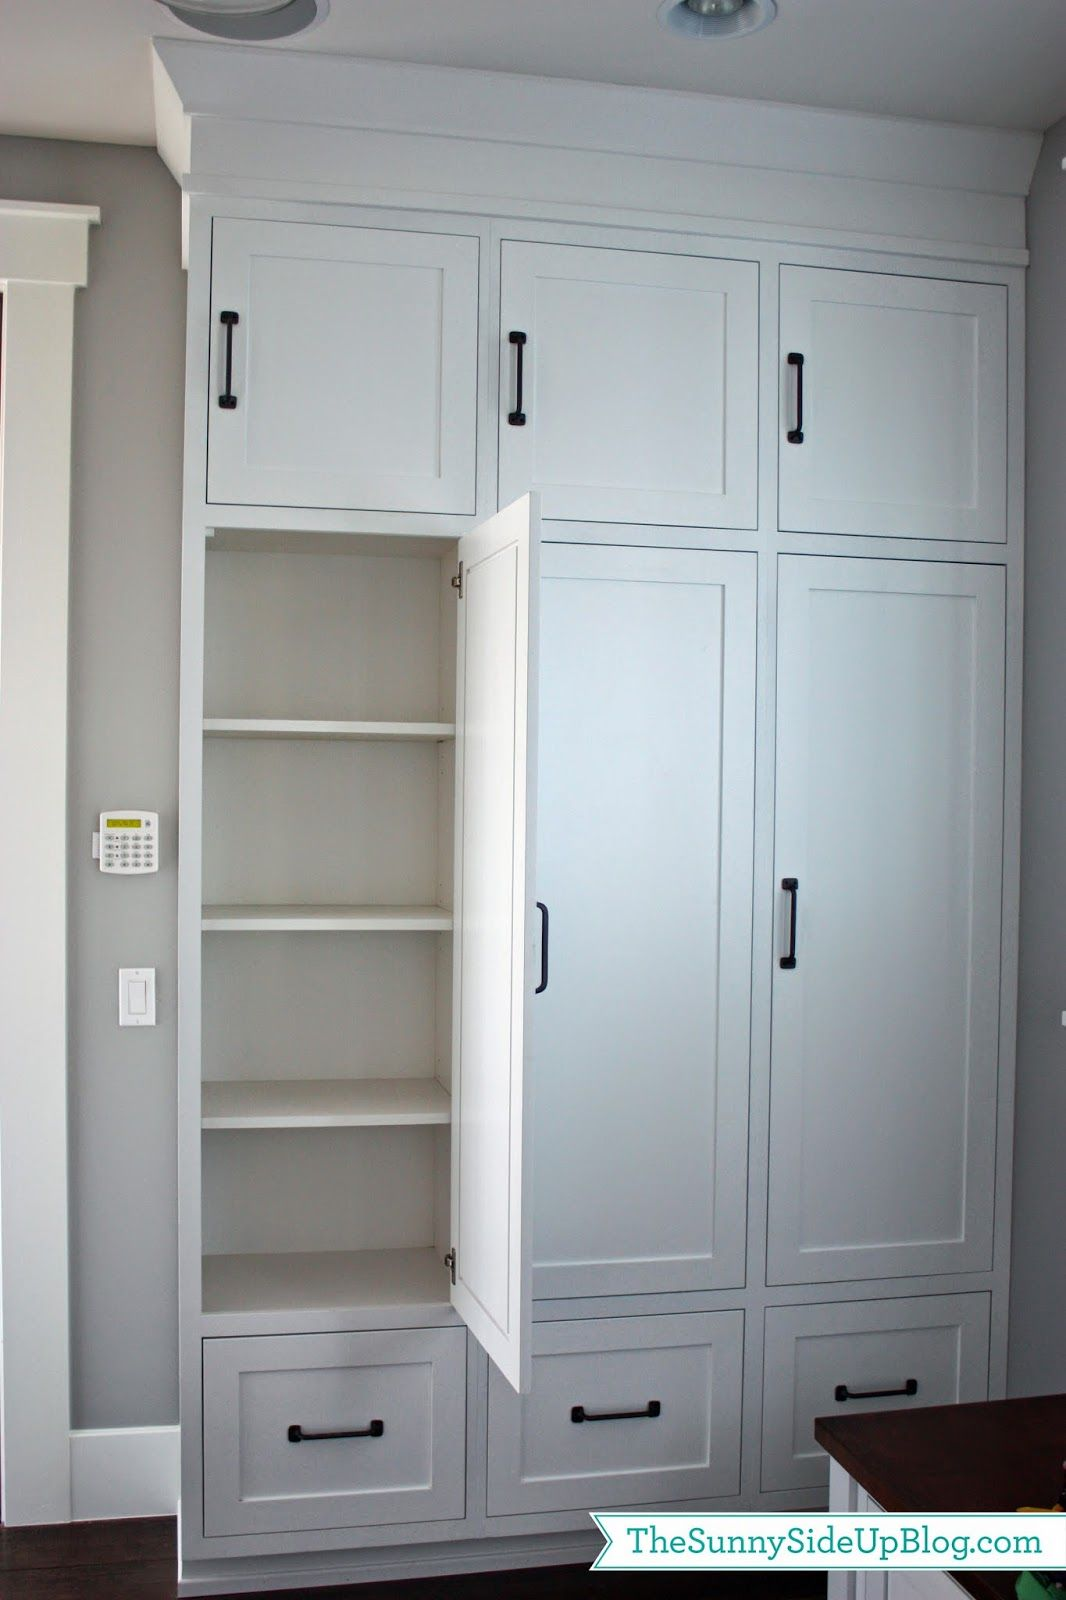 Mudroom Wall Storage Unit : My new organized mudroom small cabinet lockers and drawers